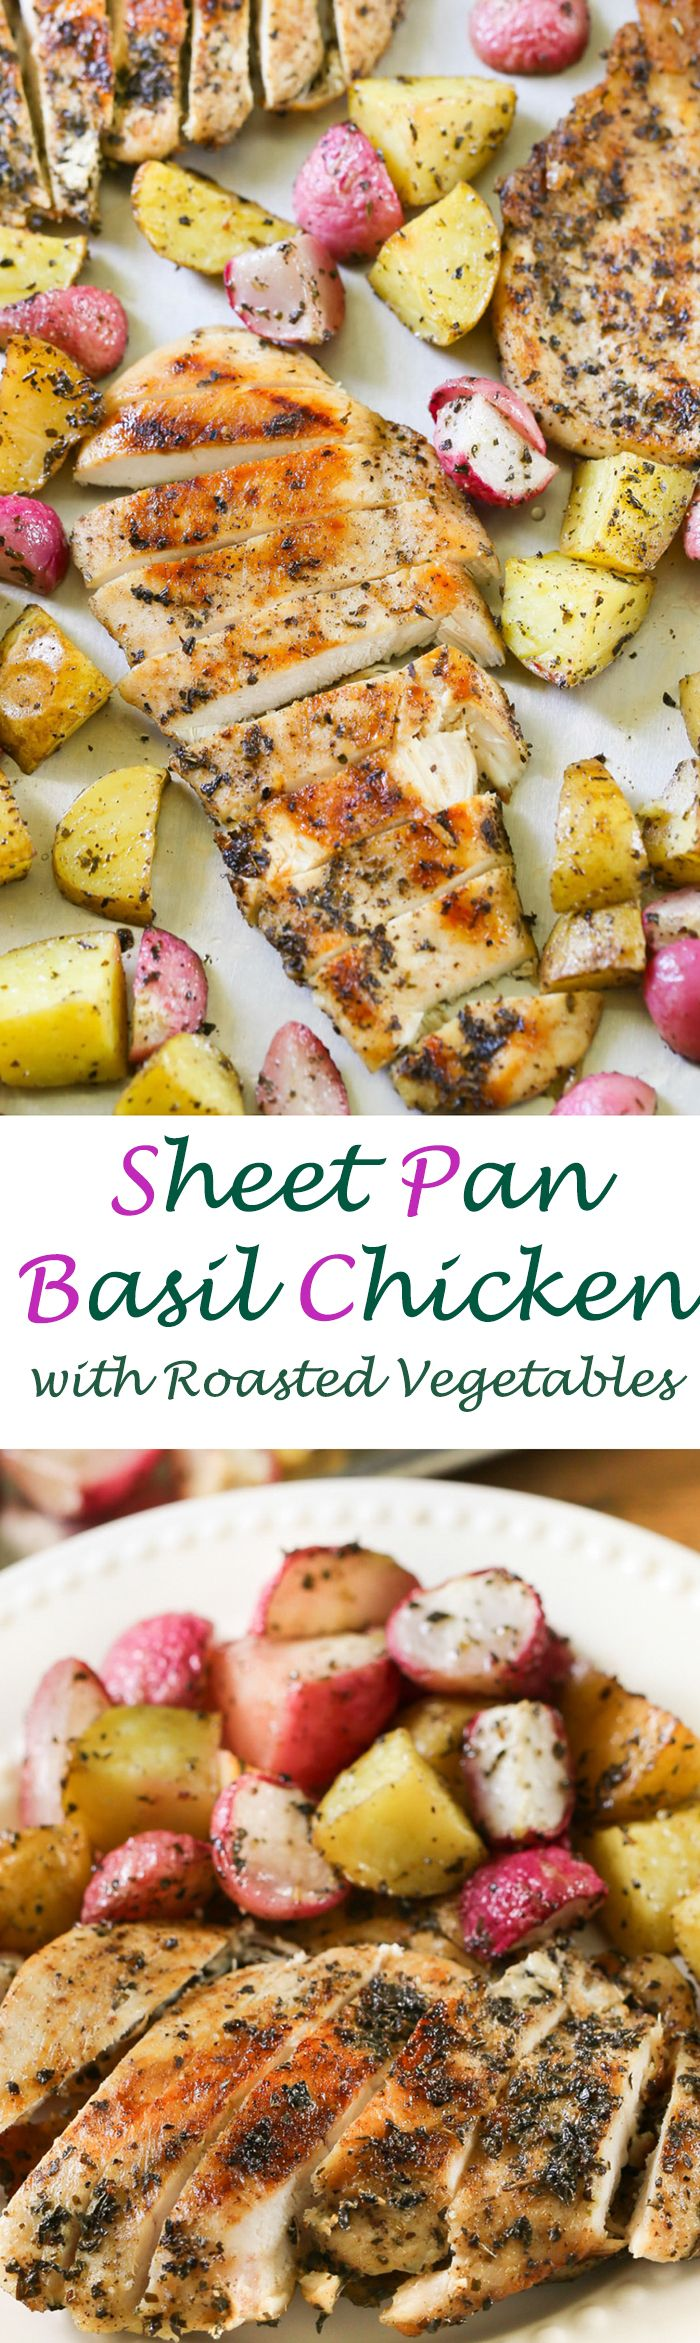 Sheet Pan Basil Citrus Chicken with Roasted Vegetables - A delightfully robust marinated chicken dinner made with six ingredients.  This easy to make recipe will quickly become a family favorite.  @Bertolli #ad #therecipeissimple